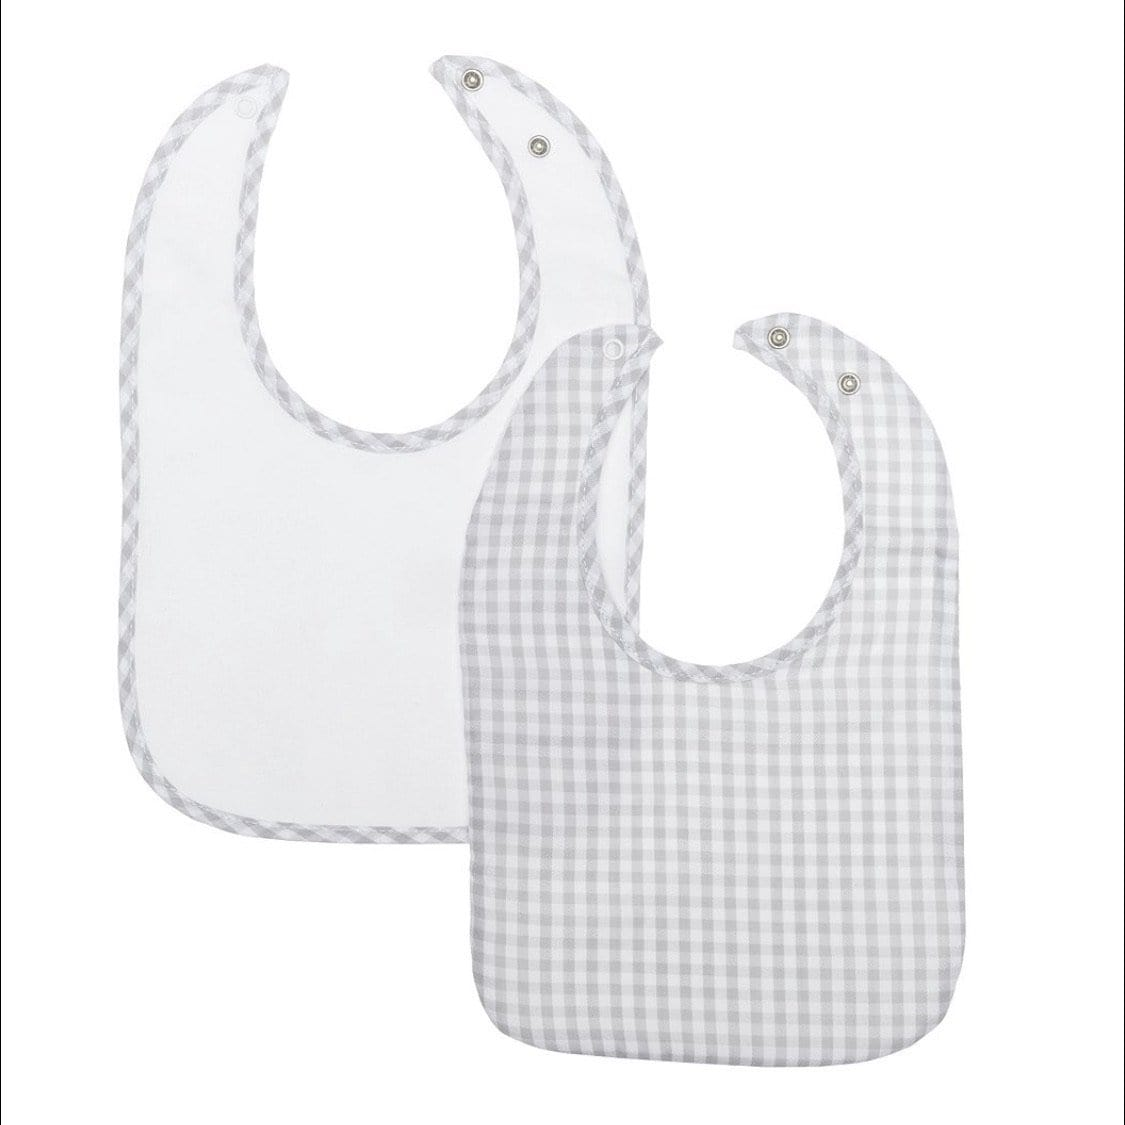 LARANJINHA GREY GINGHAM BIB TWO PACK